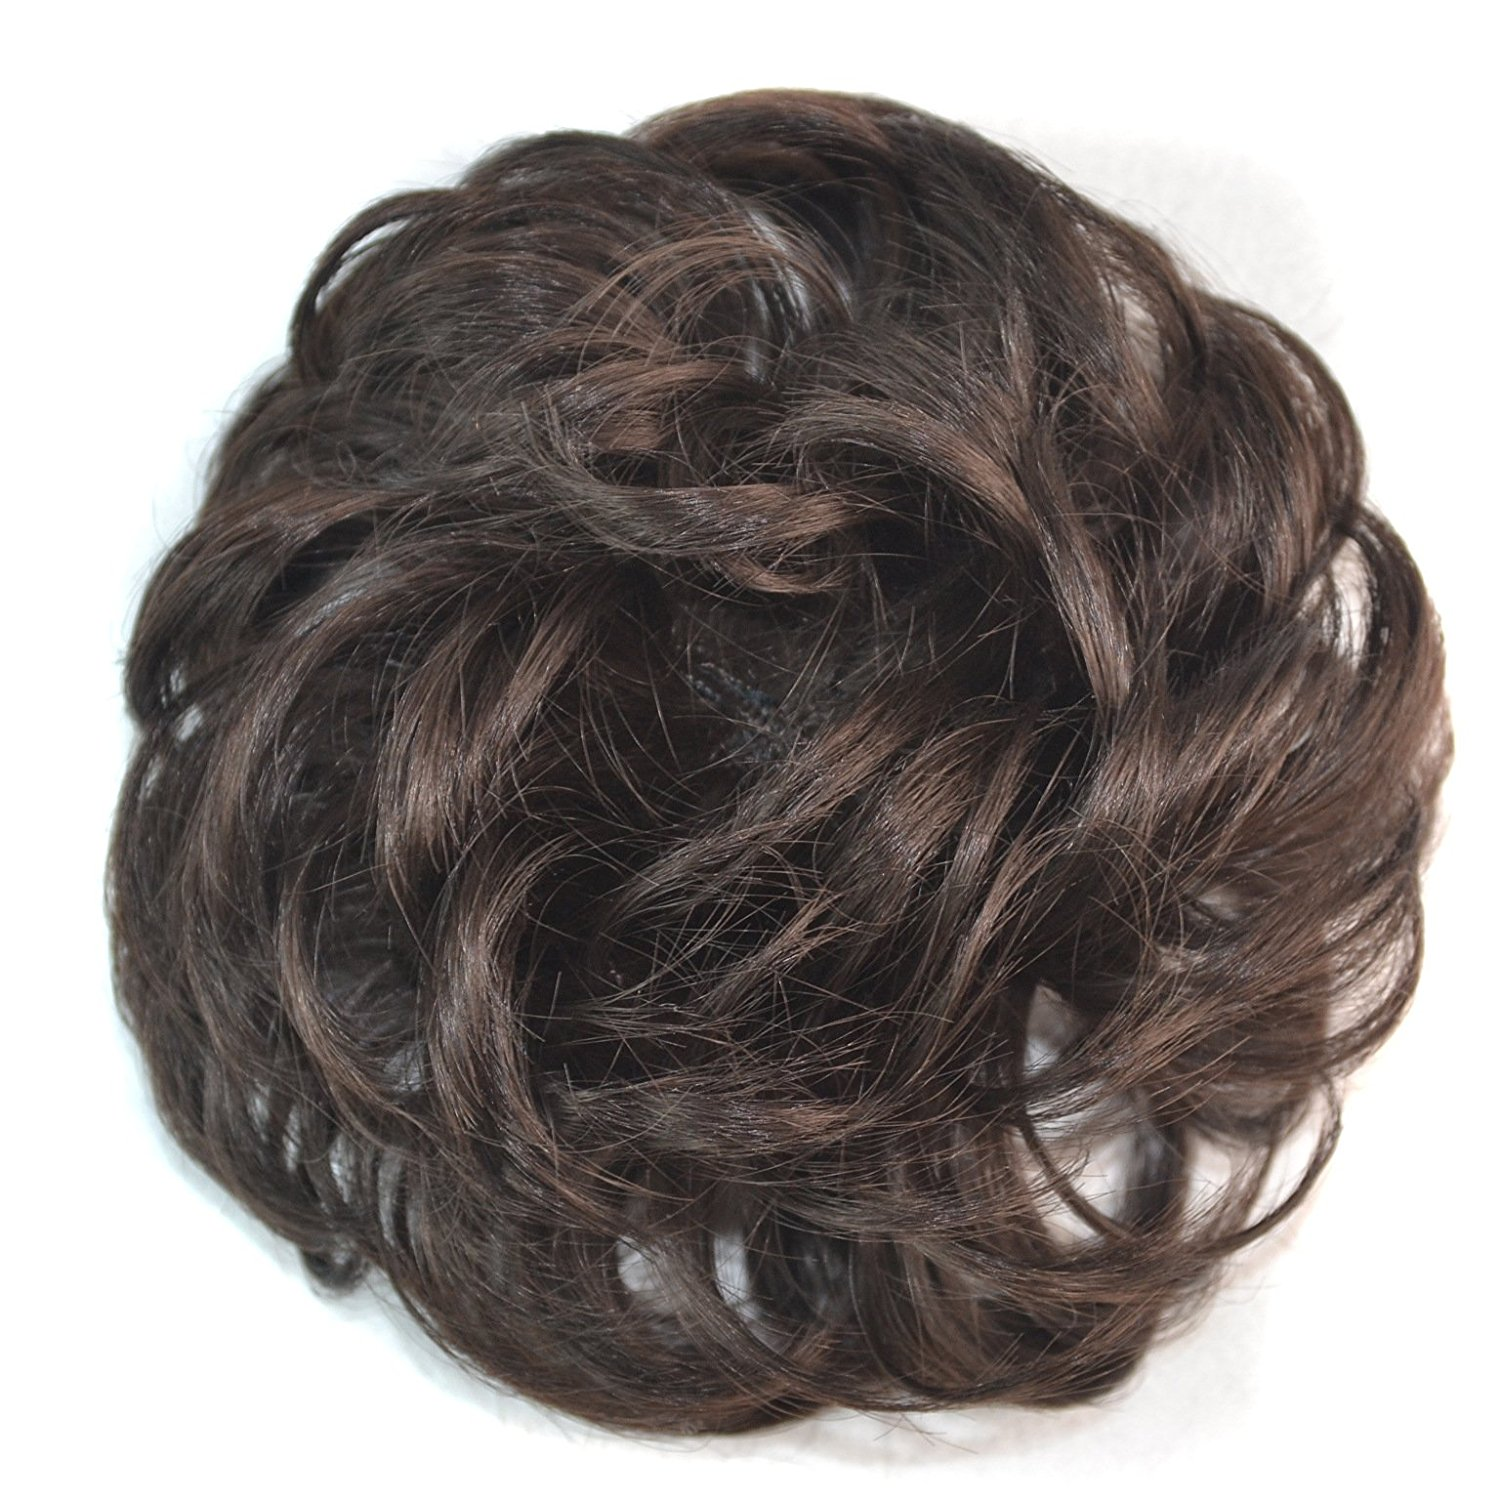 Cheap Updo Hairstyles Curly Hair Find Updo Hairstyles Curly Hair